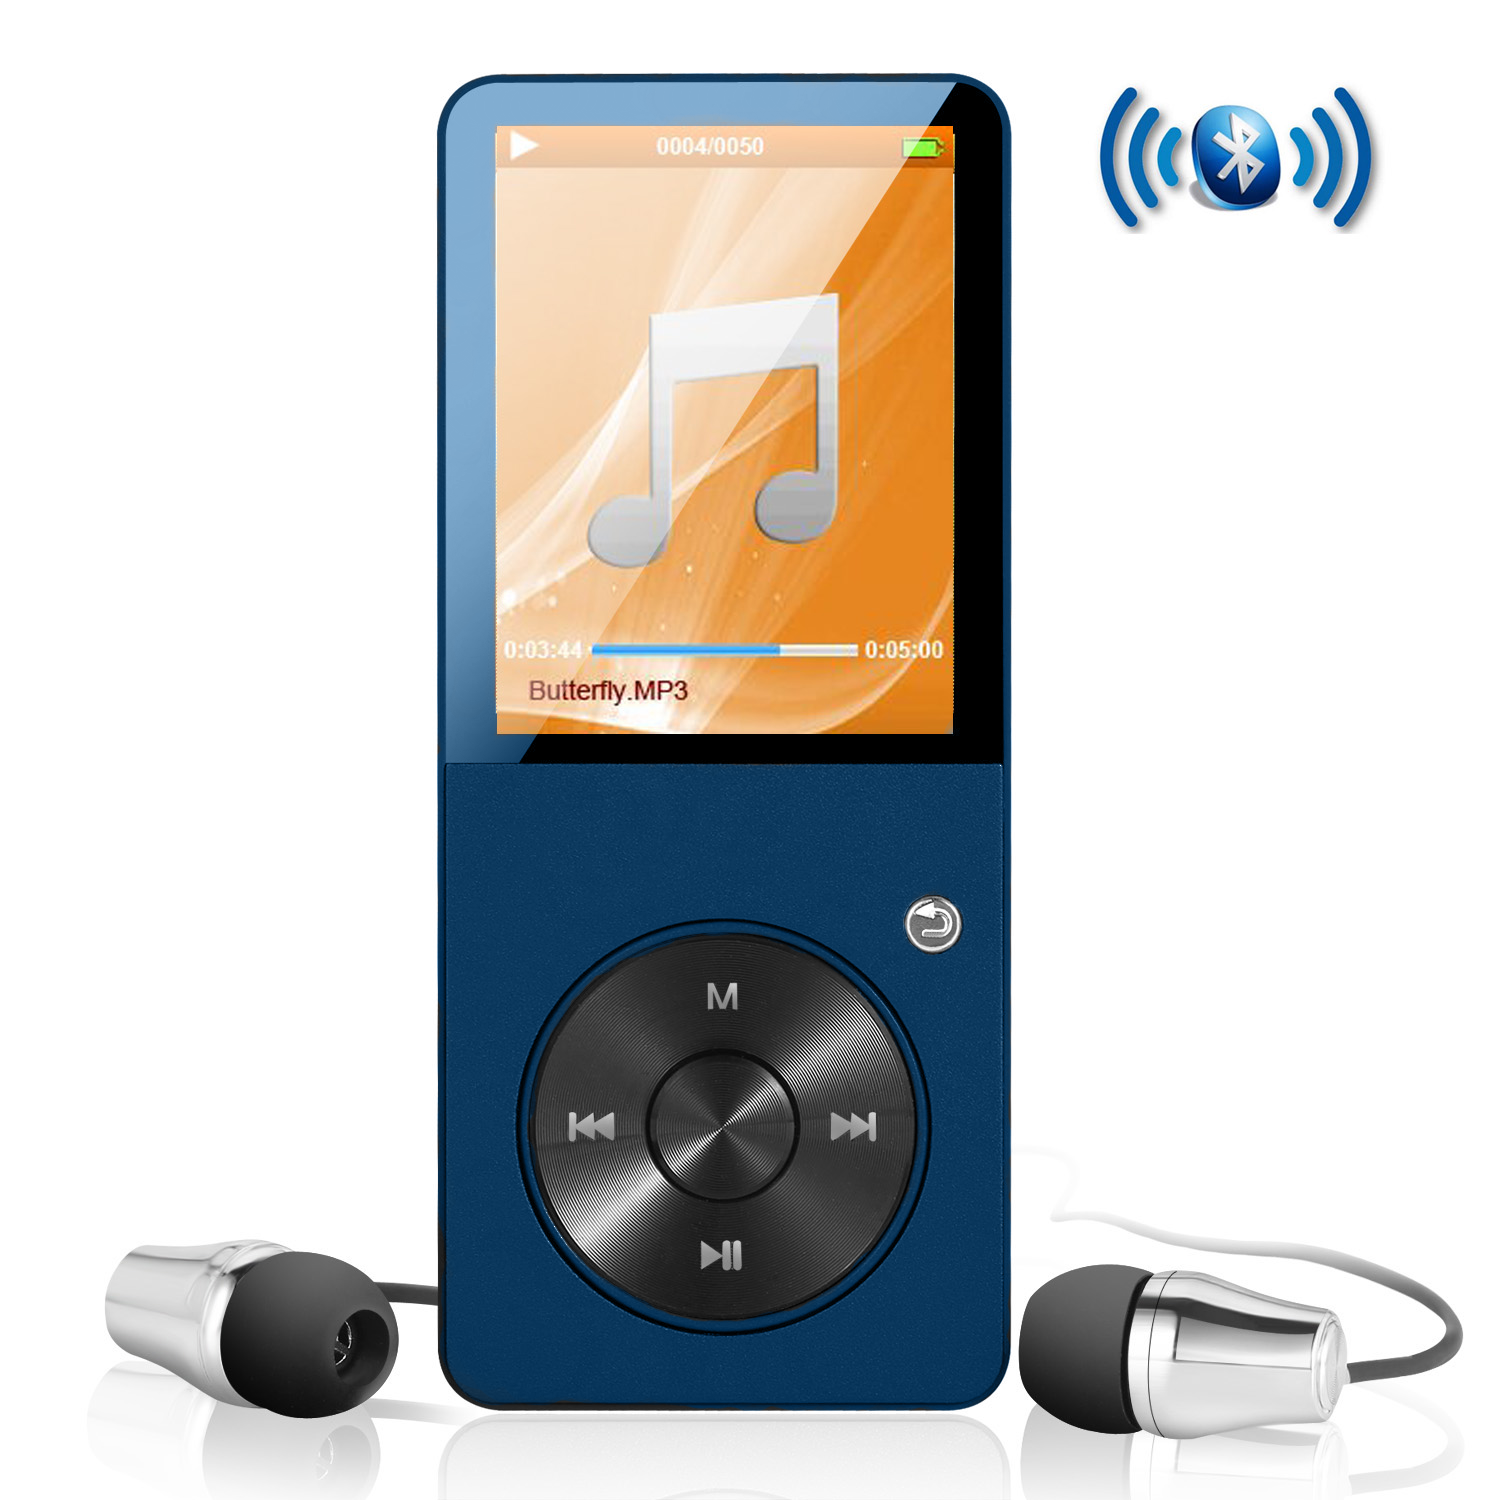 MP3 Player Music Player with Bluetooth ES Traders® 8GB Portable Mini Digital Music Player FM Radio, Photo Browsing, Video Play, Pedometer, Text Reading- Supports 64GB SD Card